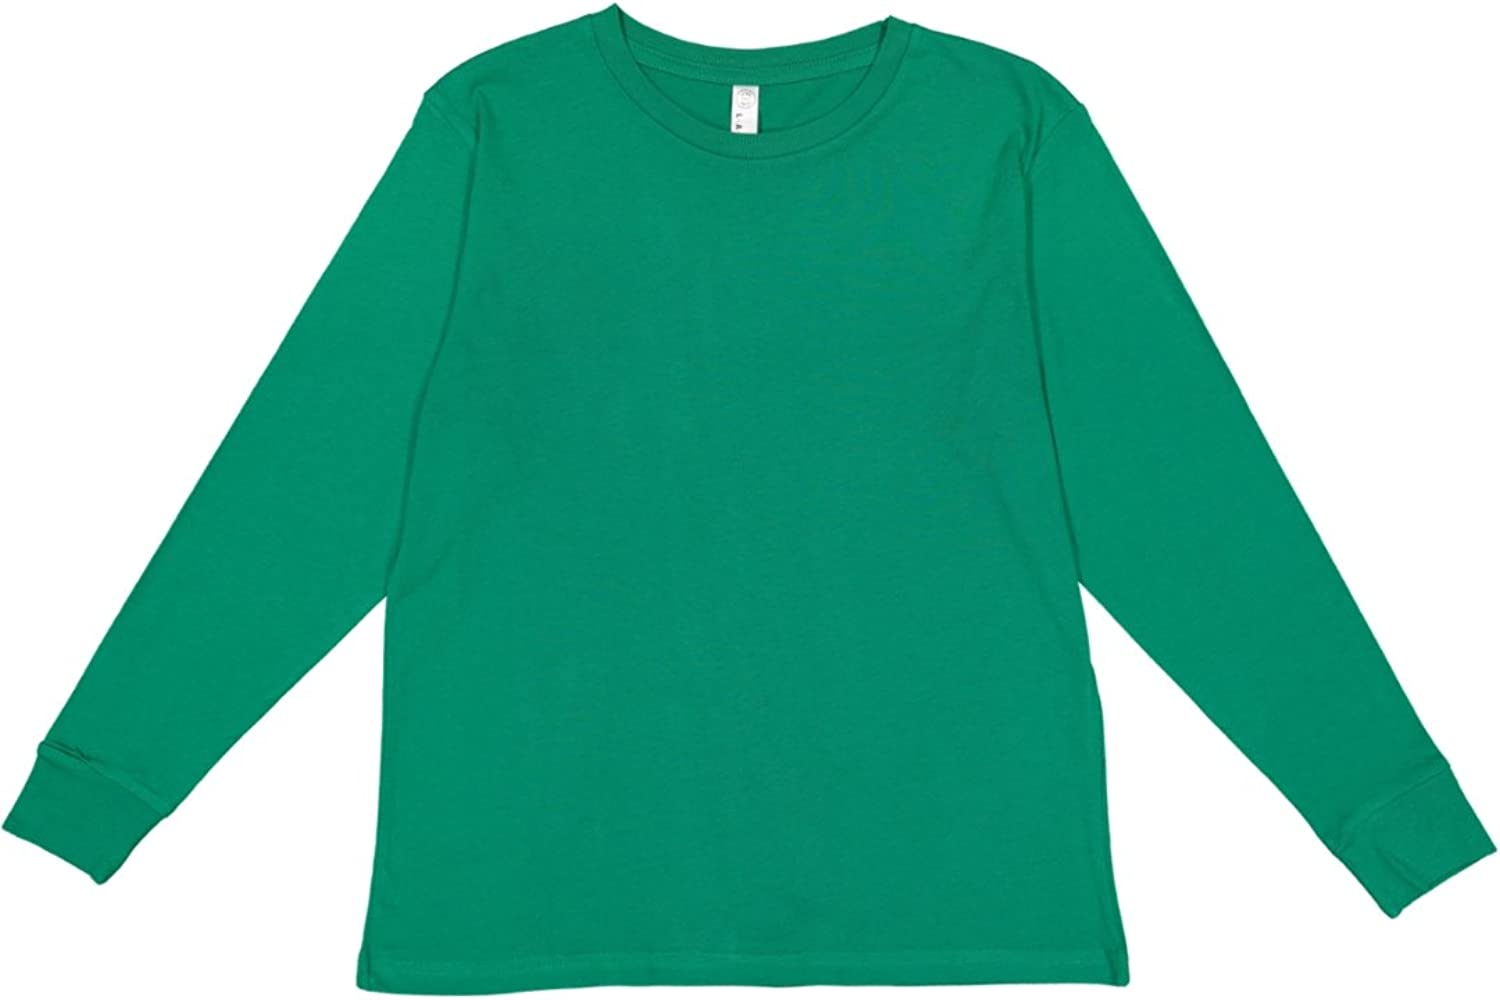 LAT Youth 100% Cotton Jersey Crew Neck Long Sleeve Tee